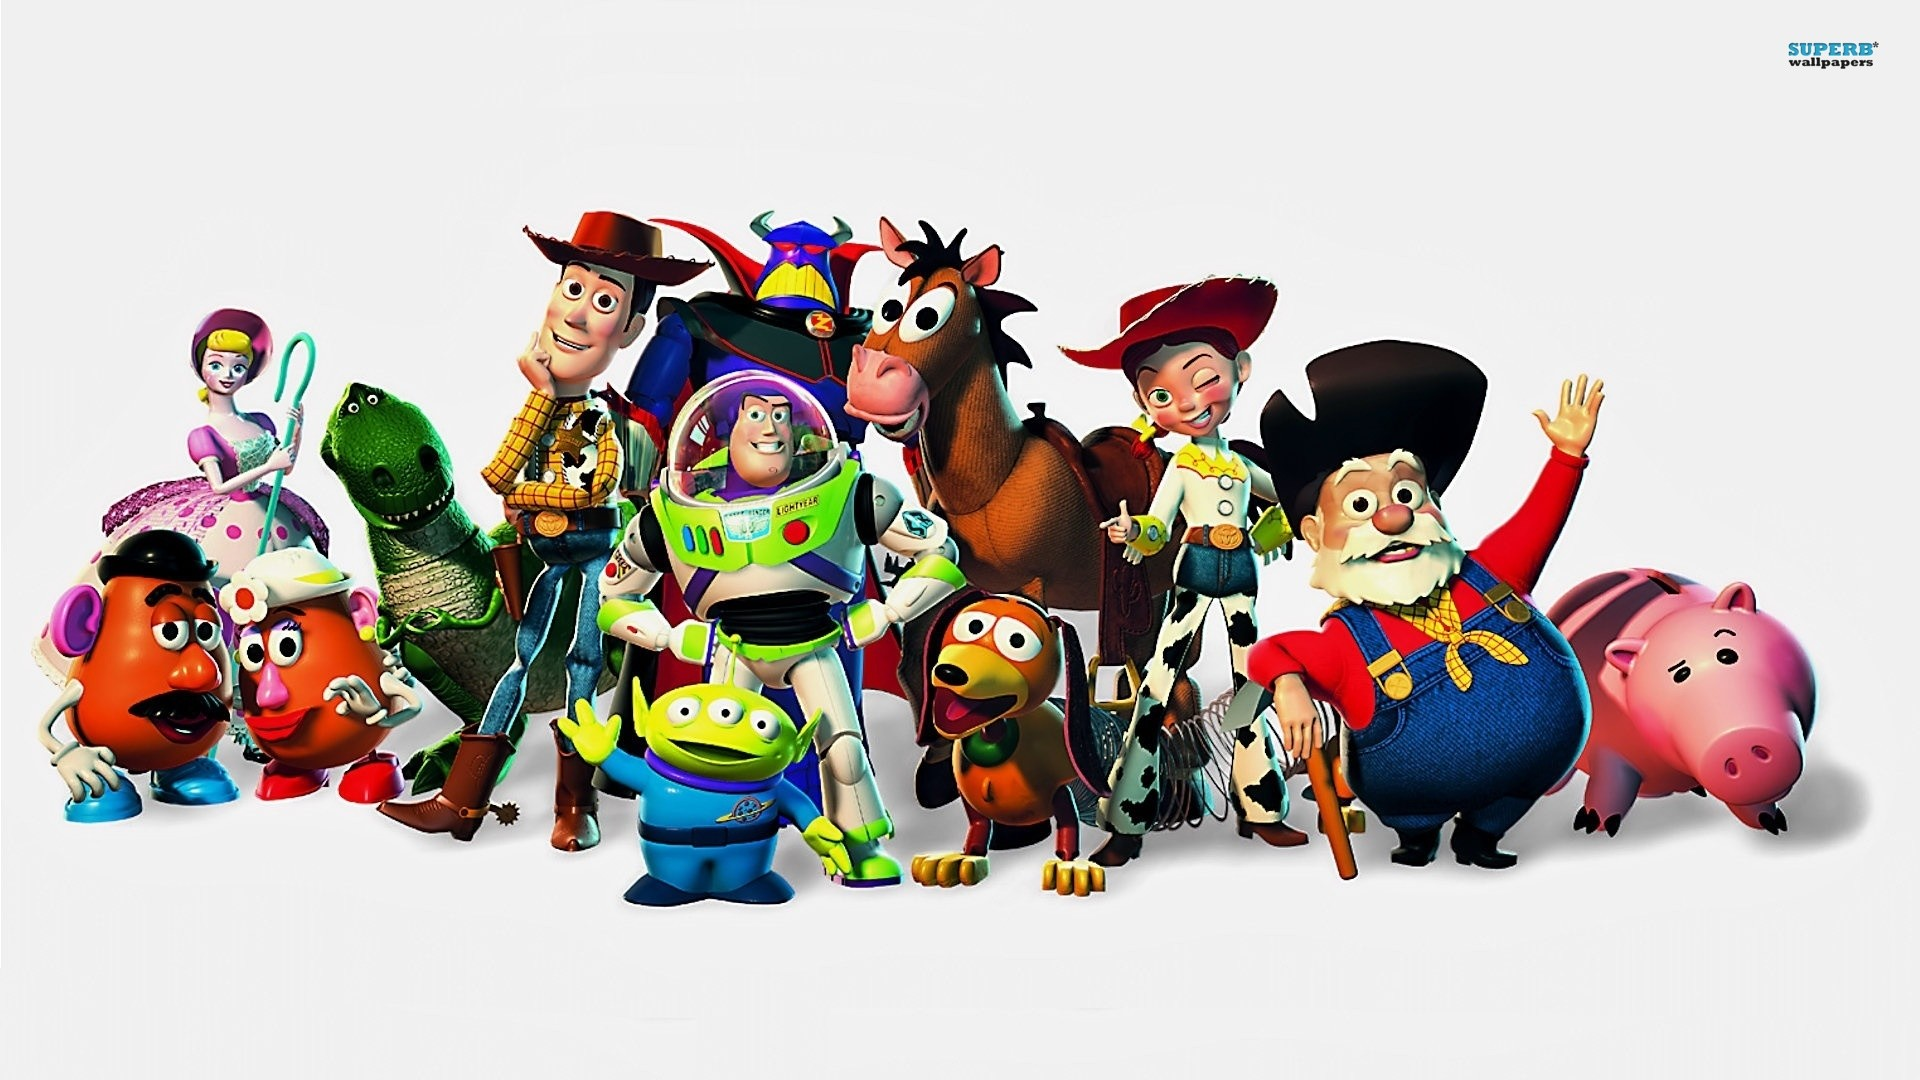 1920x1080 Toy Story 2 HD Wallpaper Image for Android